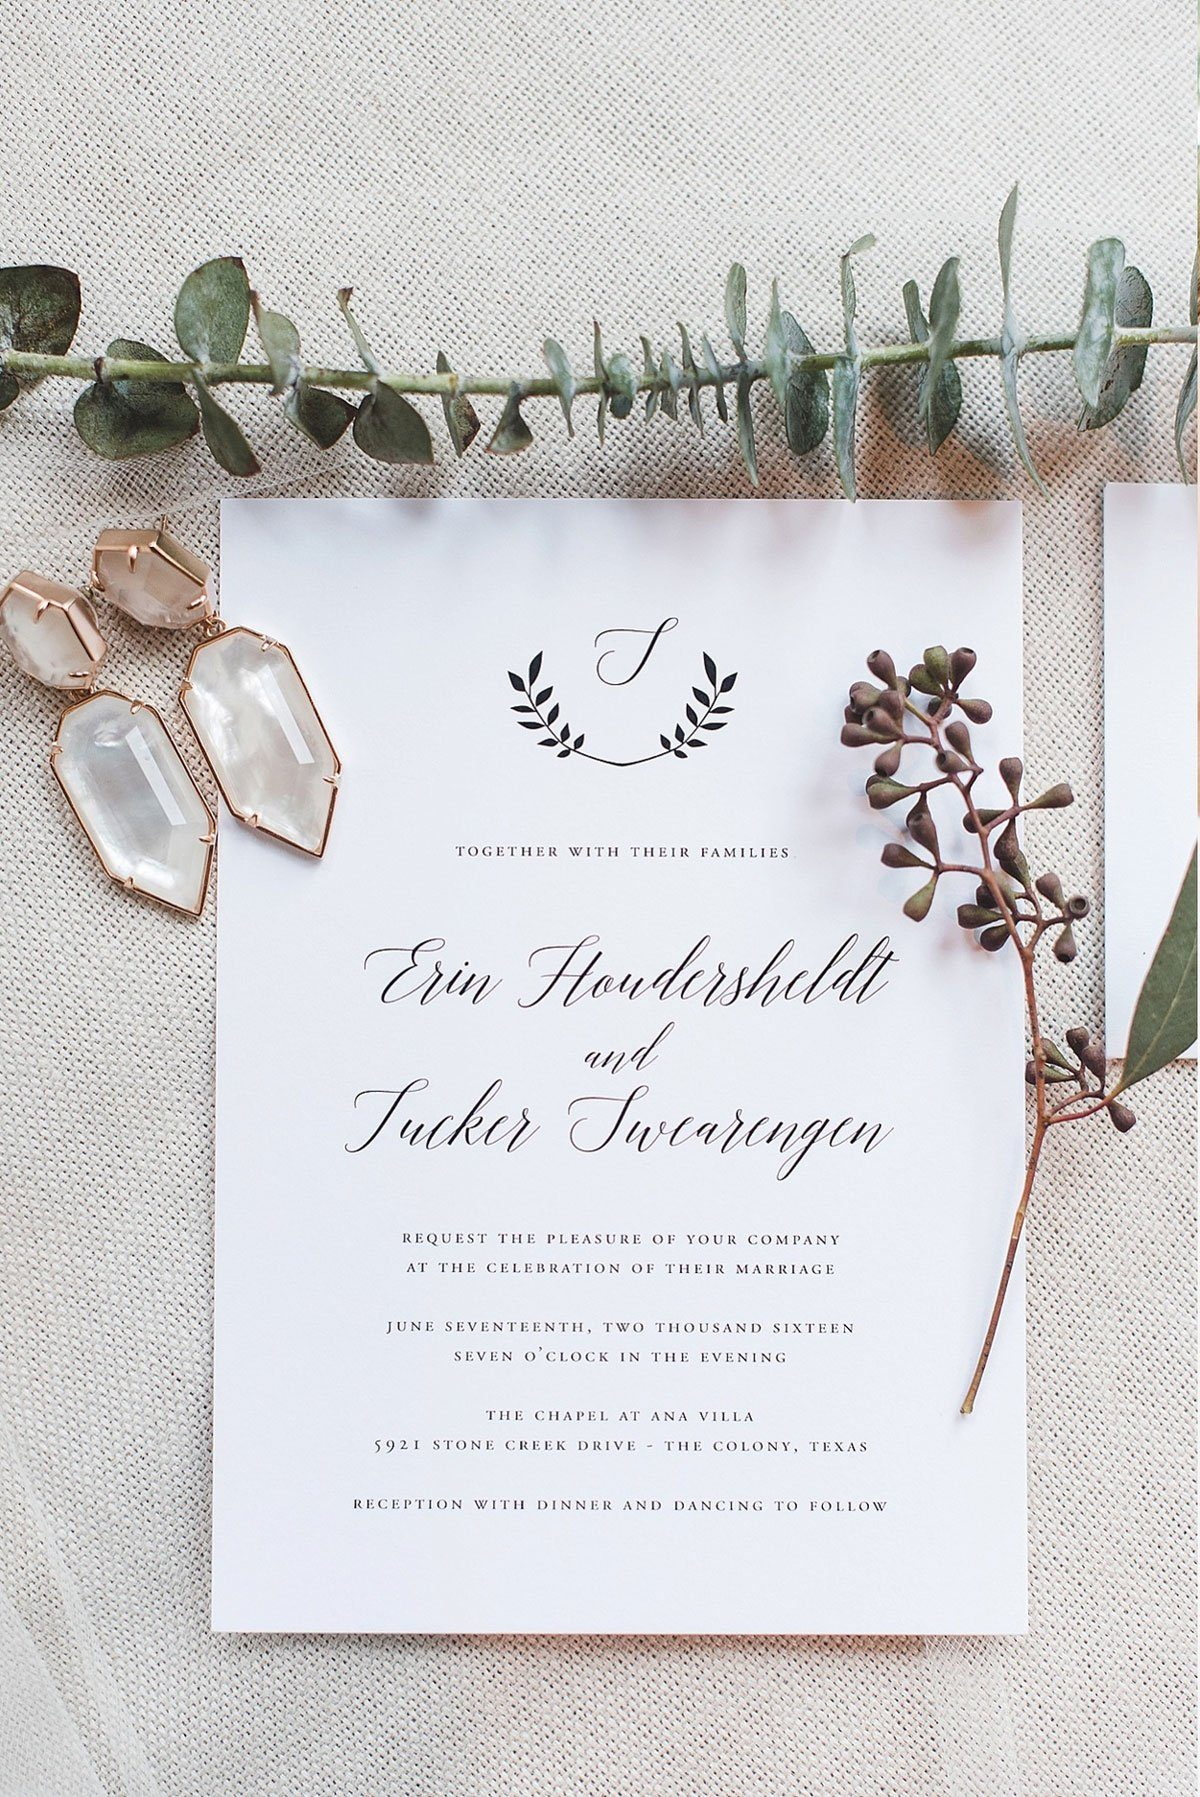 Simple and Classic Wedding Invitations with a Greenery Monogram